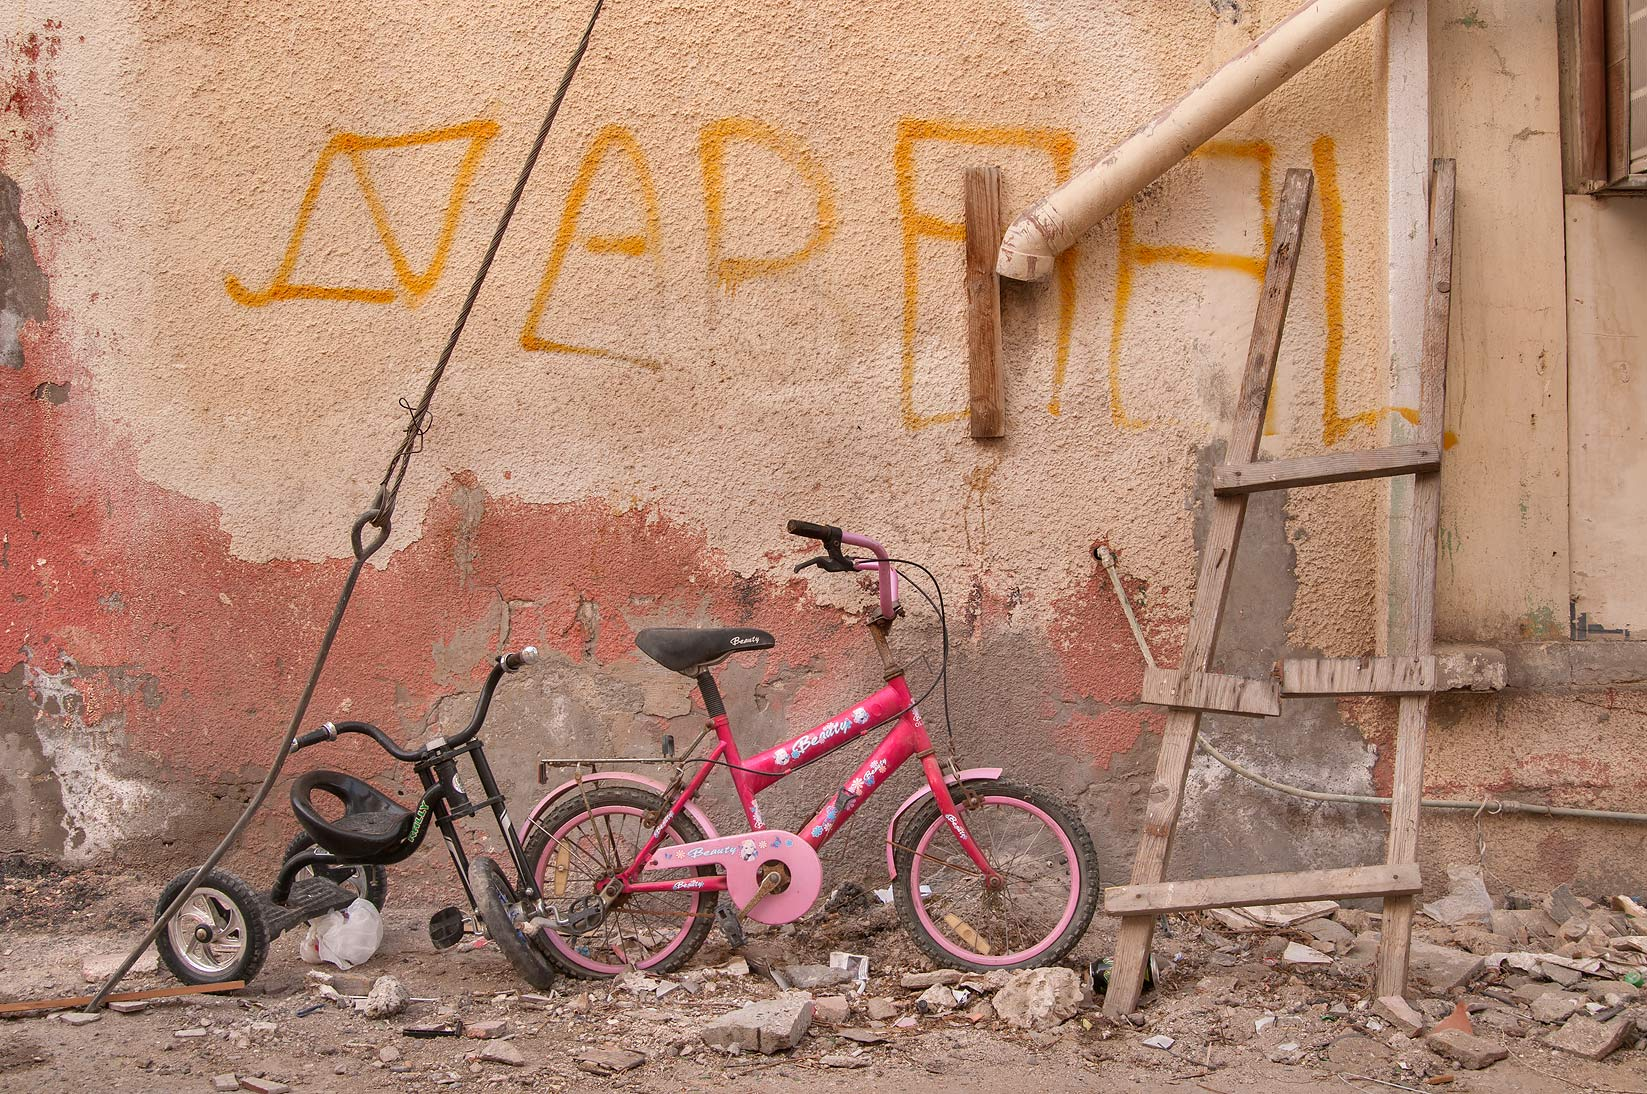 Children's bicycles at Sikkat Bishr Bin Al Baraa, Najma area. Doha, Qatar